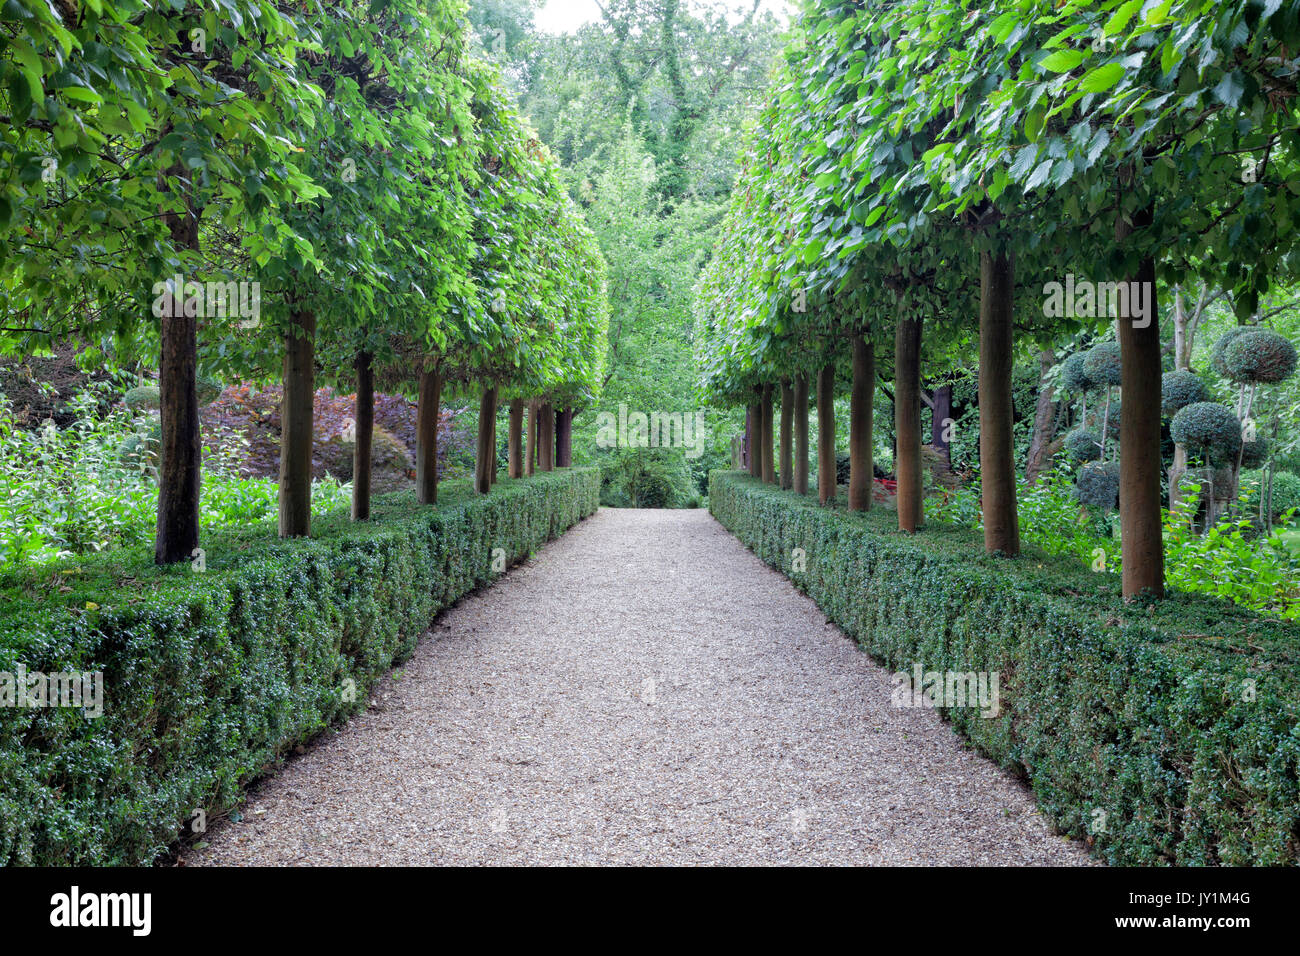 Walking Stone Path Between Rows Of Topiary Trees Growing In A Stock Photo Alamy